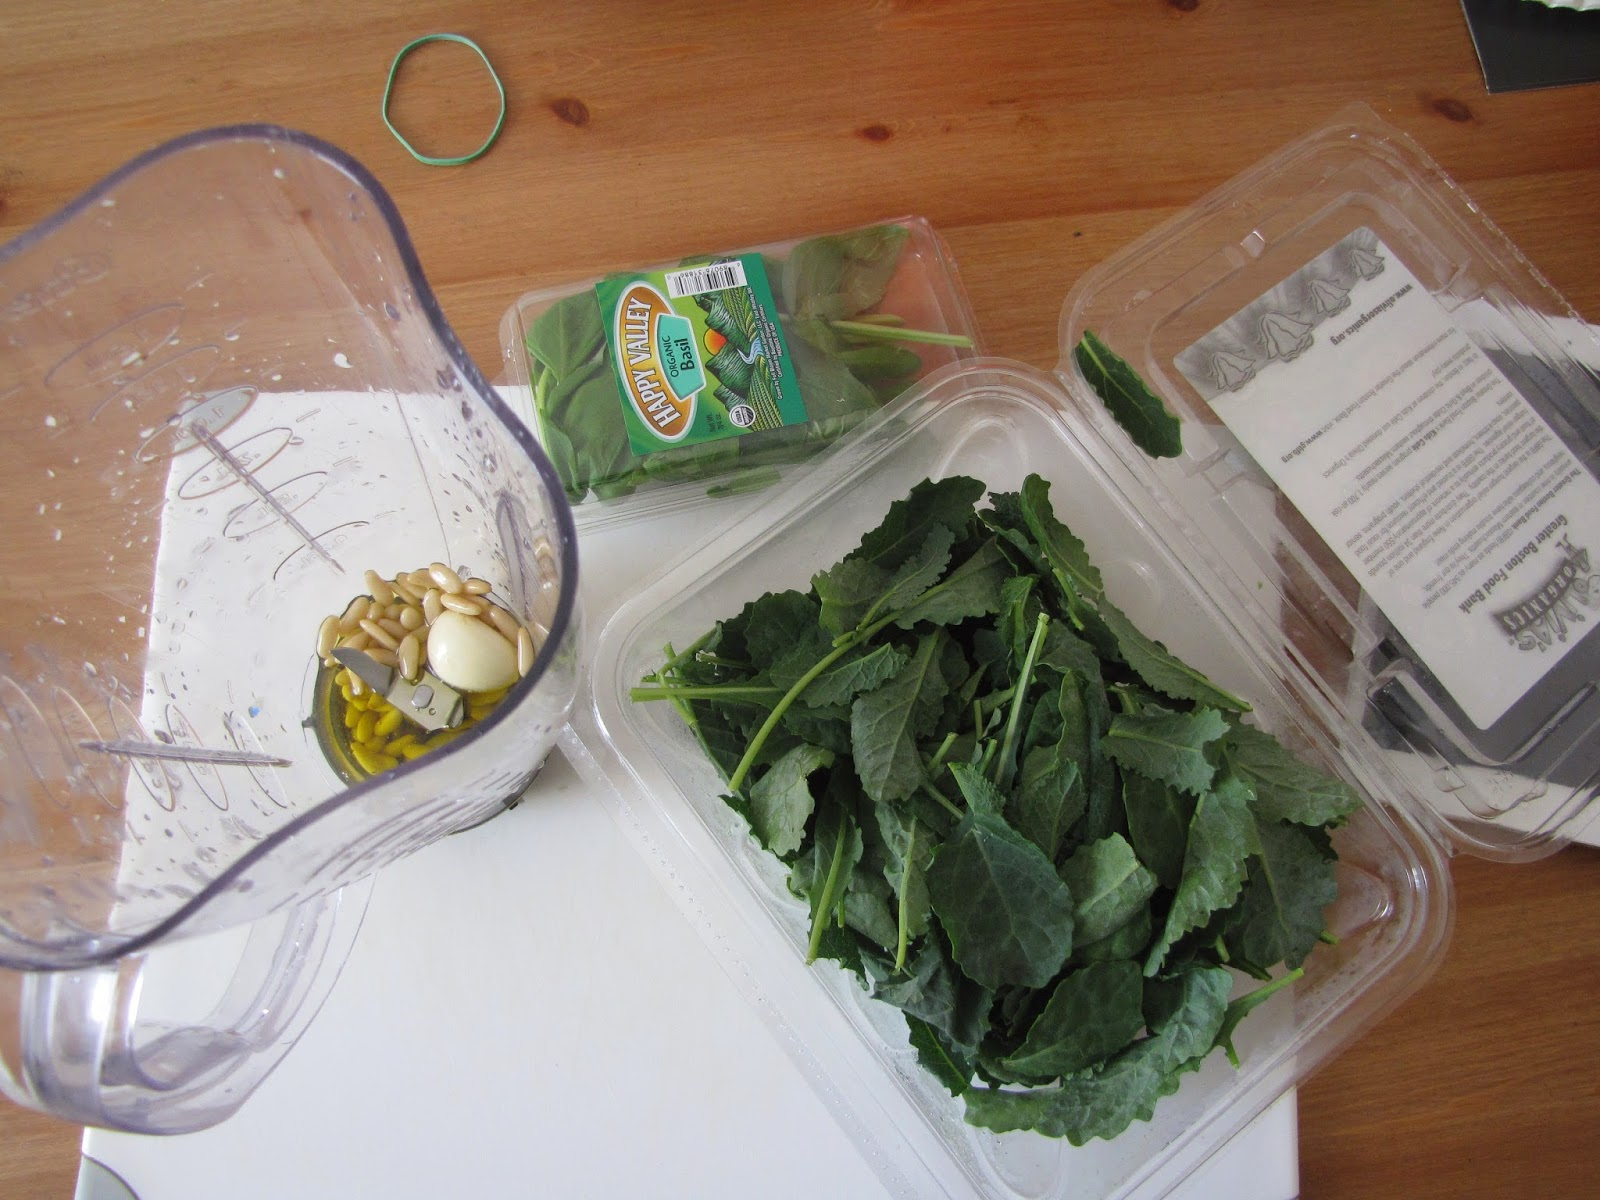 Baby Kale, Pine nuts, Olive oil, garlic and basil for a pesto about to be blended